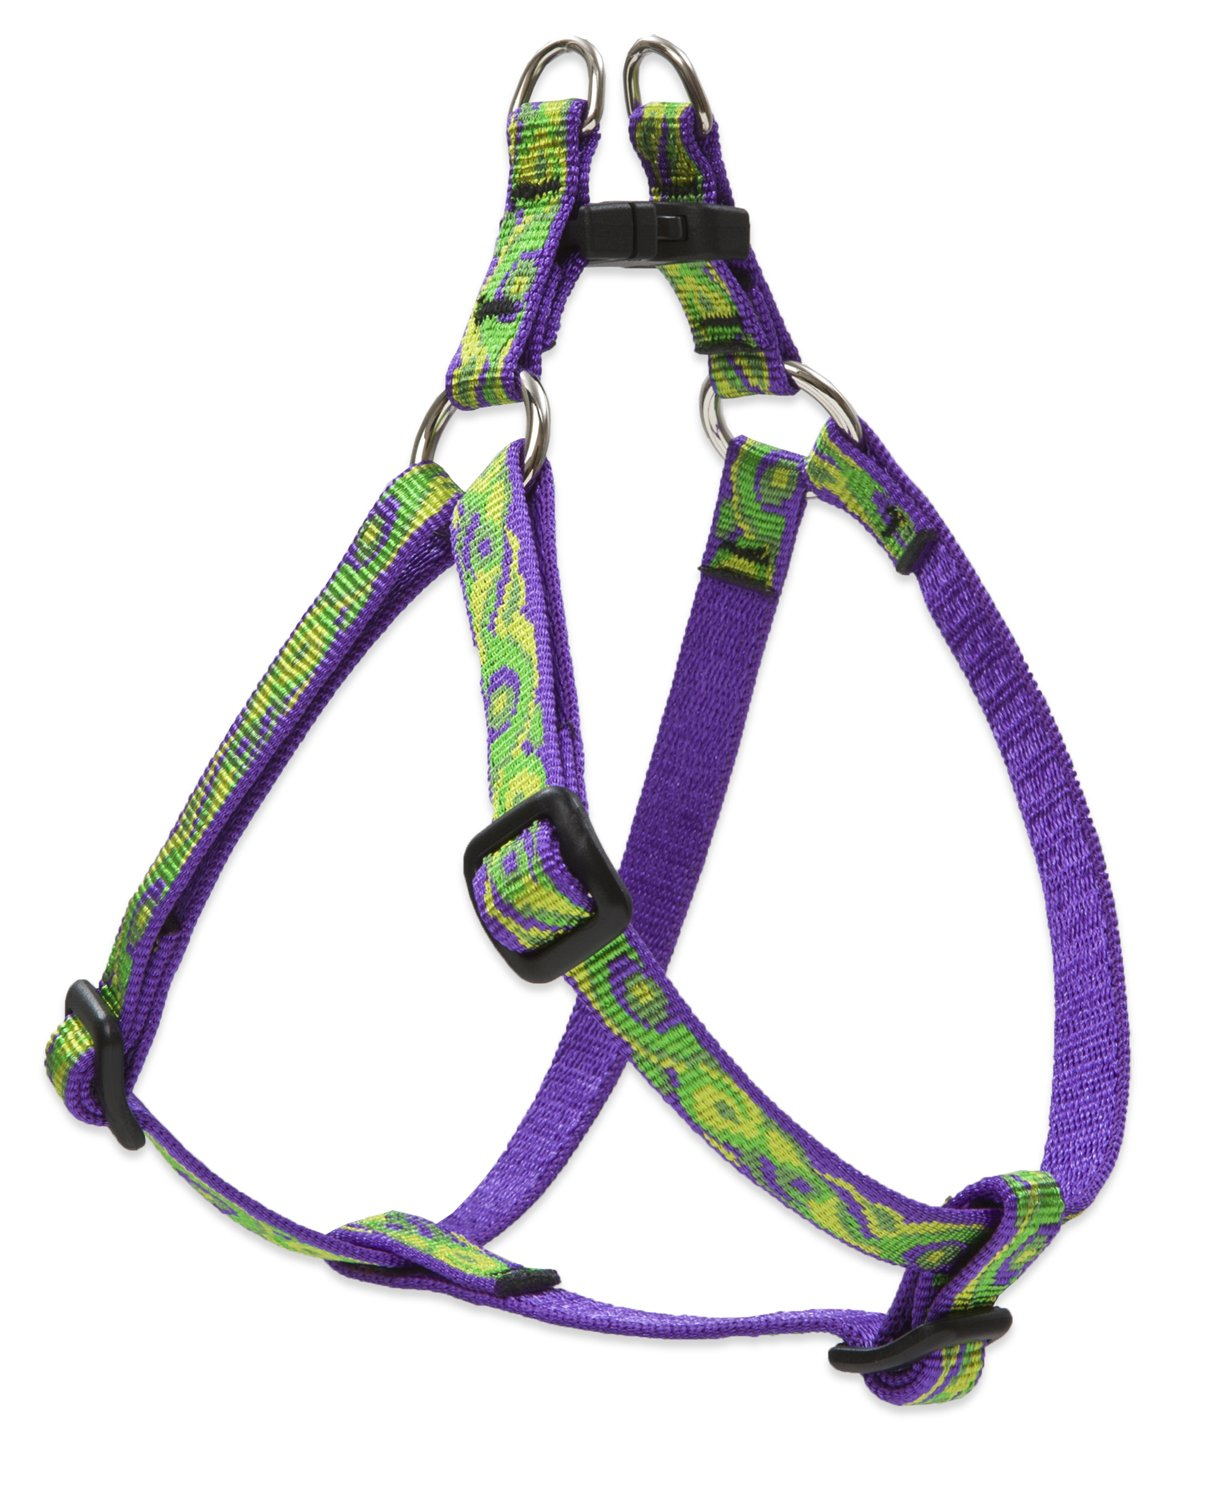 1 2\ Lupine Step in Dog Harness 1 2-Inch Width, 12-Inch to 18-Inch Girth, Big Easy